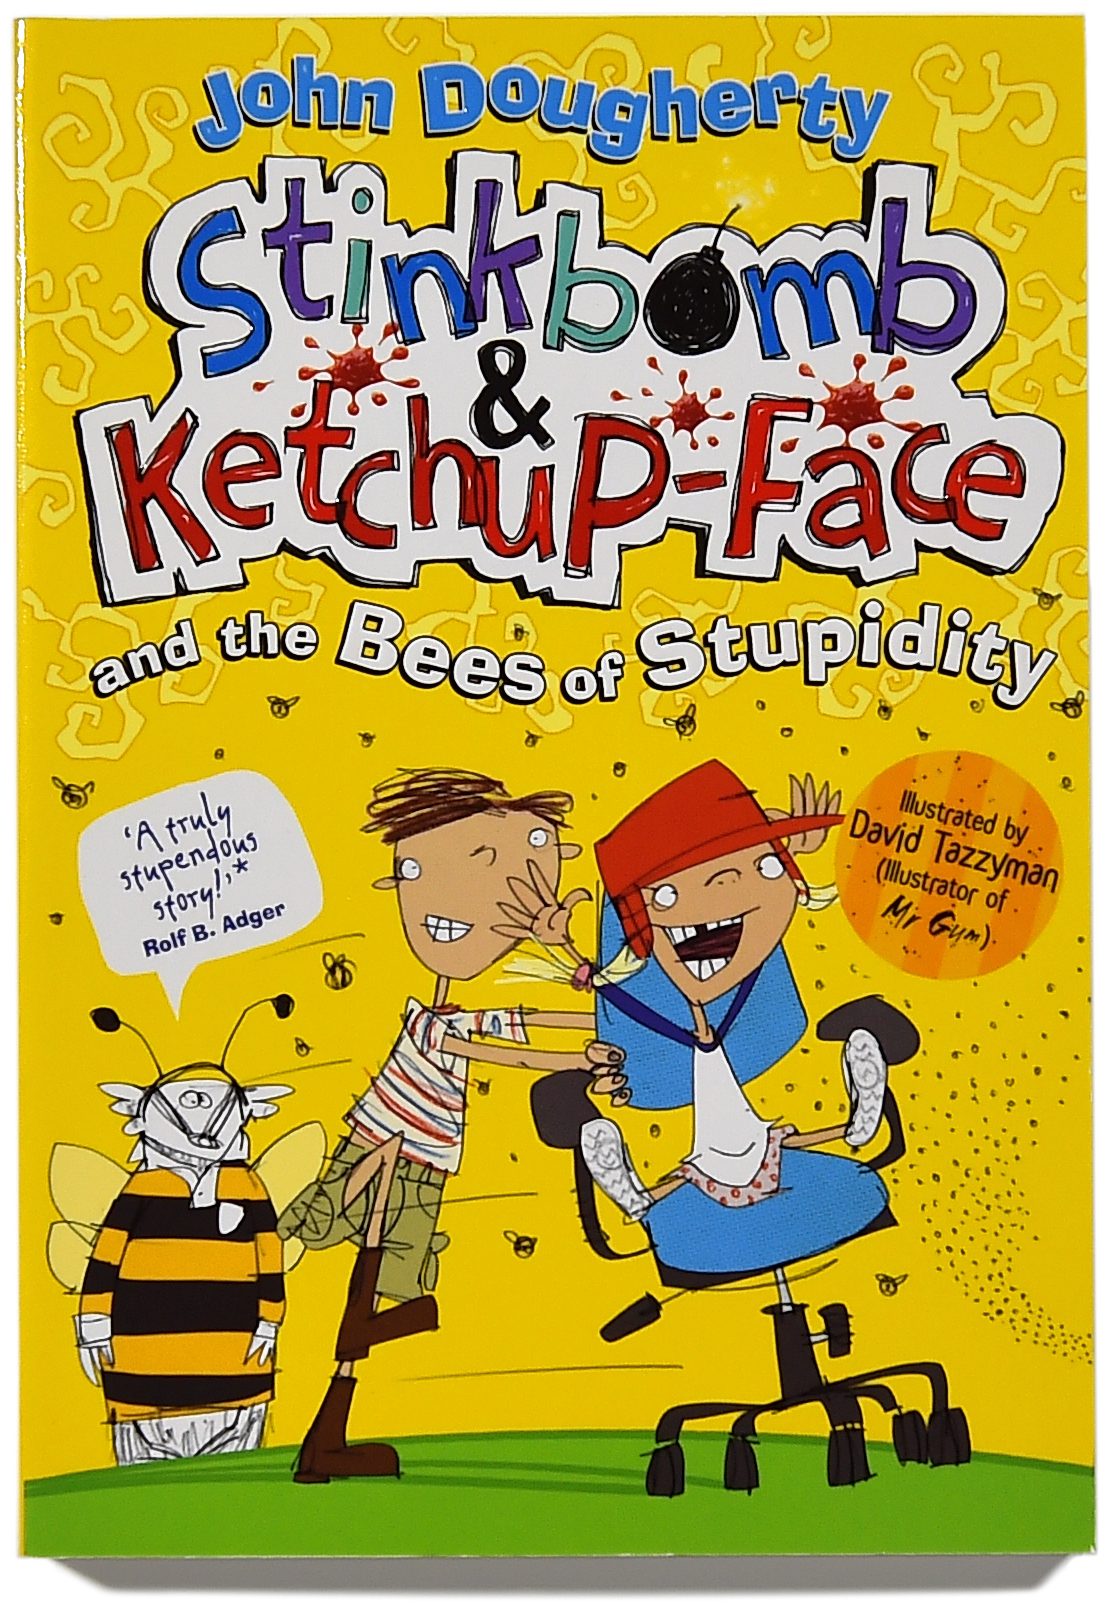 Stinkbomb & Ketchup-Face and the Bees of stupidity cover.FIN.jpg